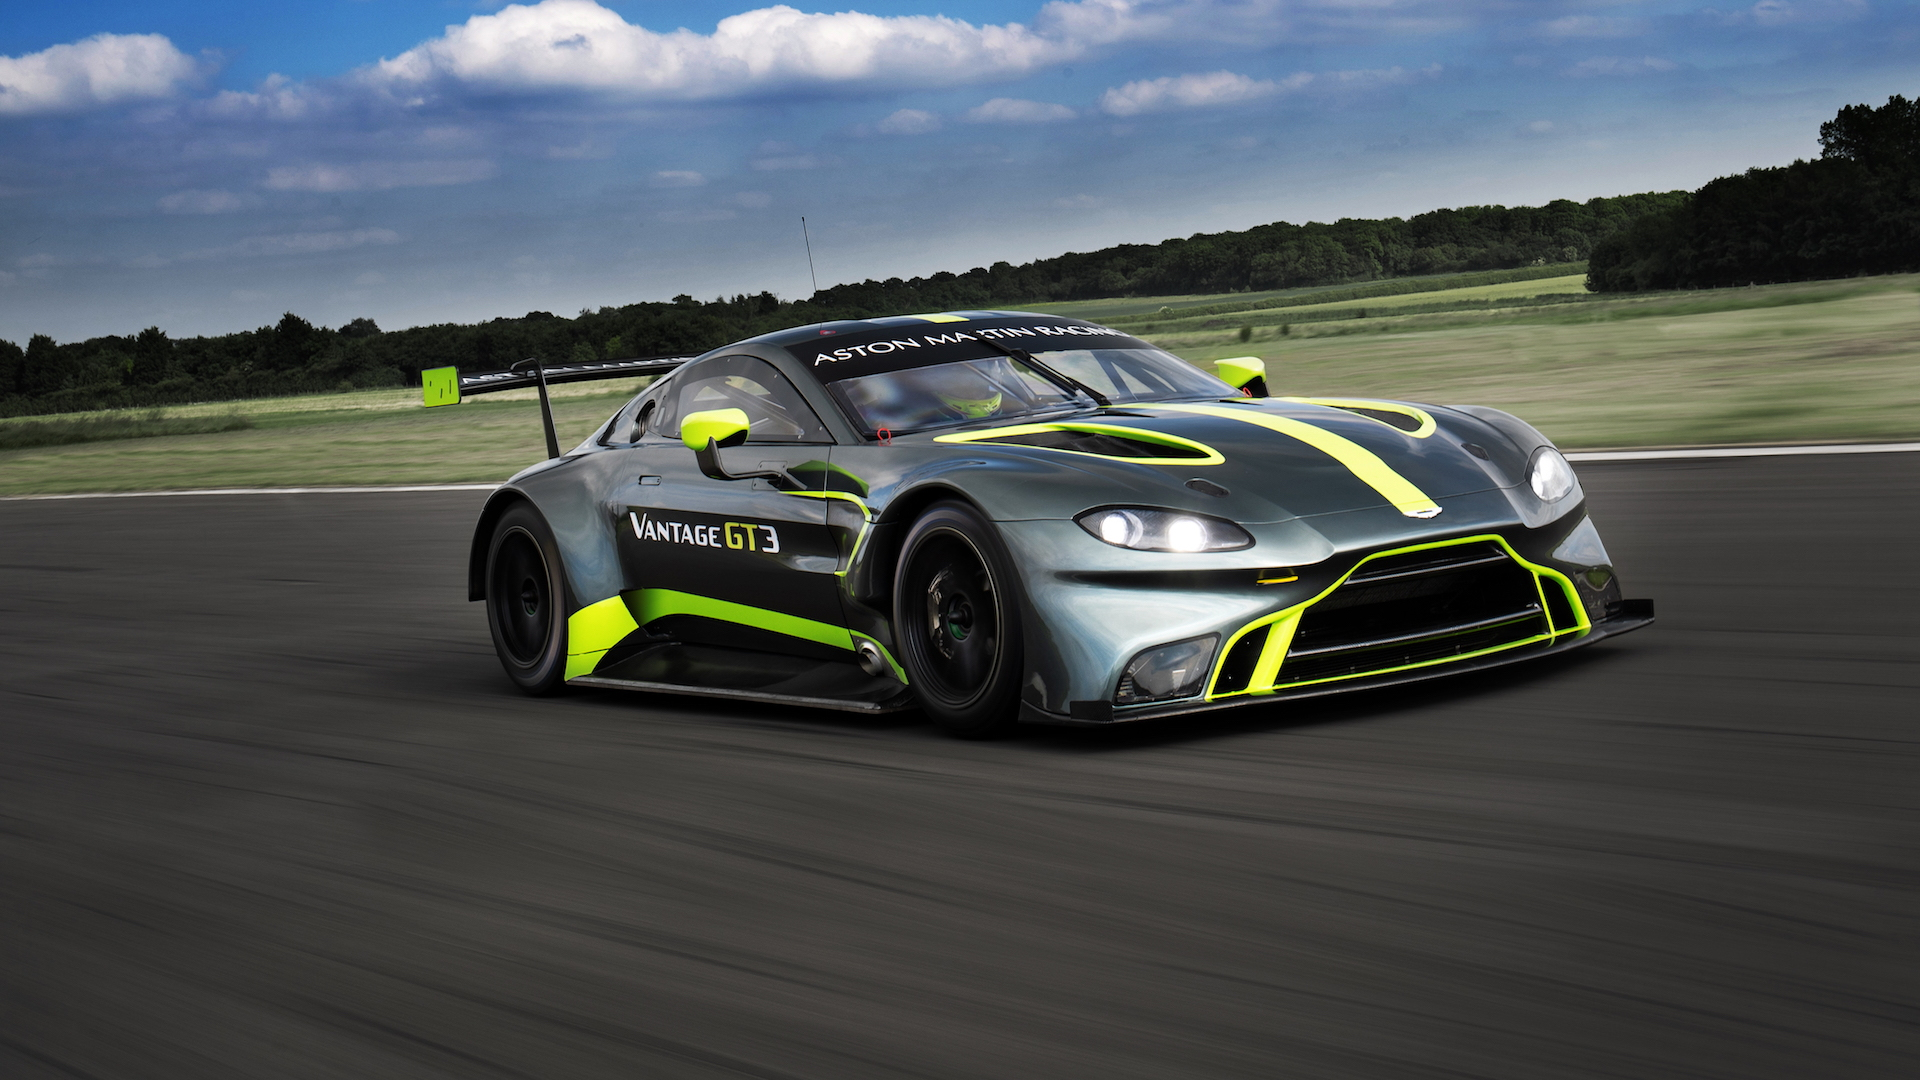 Aston Martin Vantage GT3 customer race car